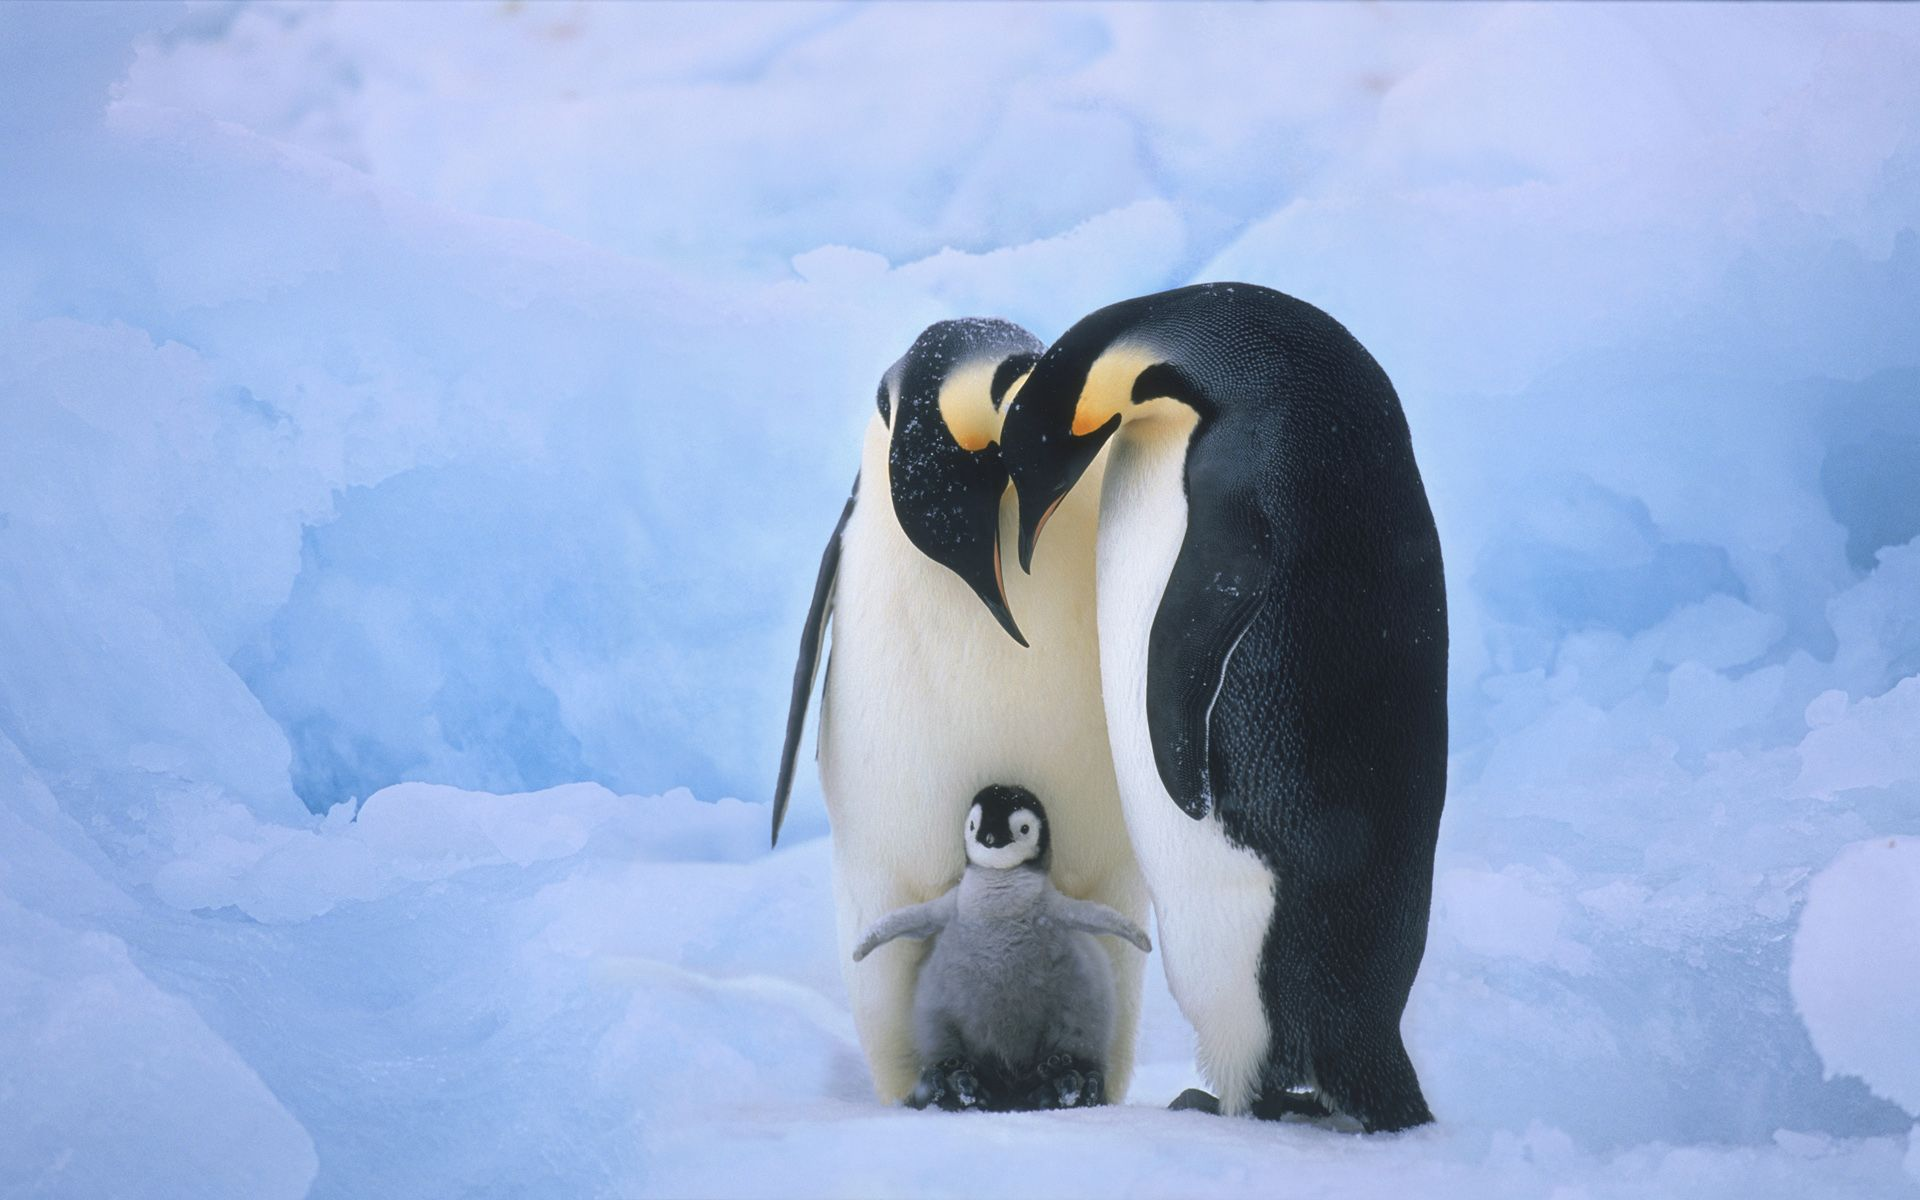 cute baby penguins |  , this shows familyhood and closeness